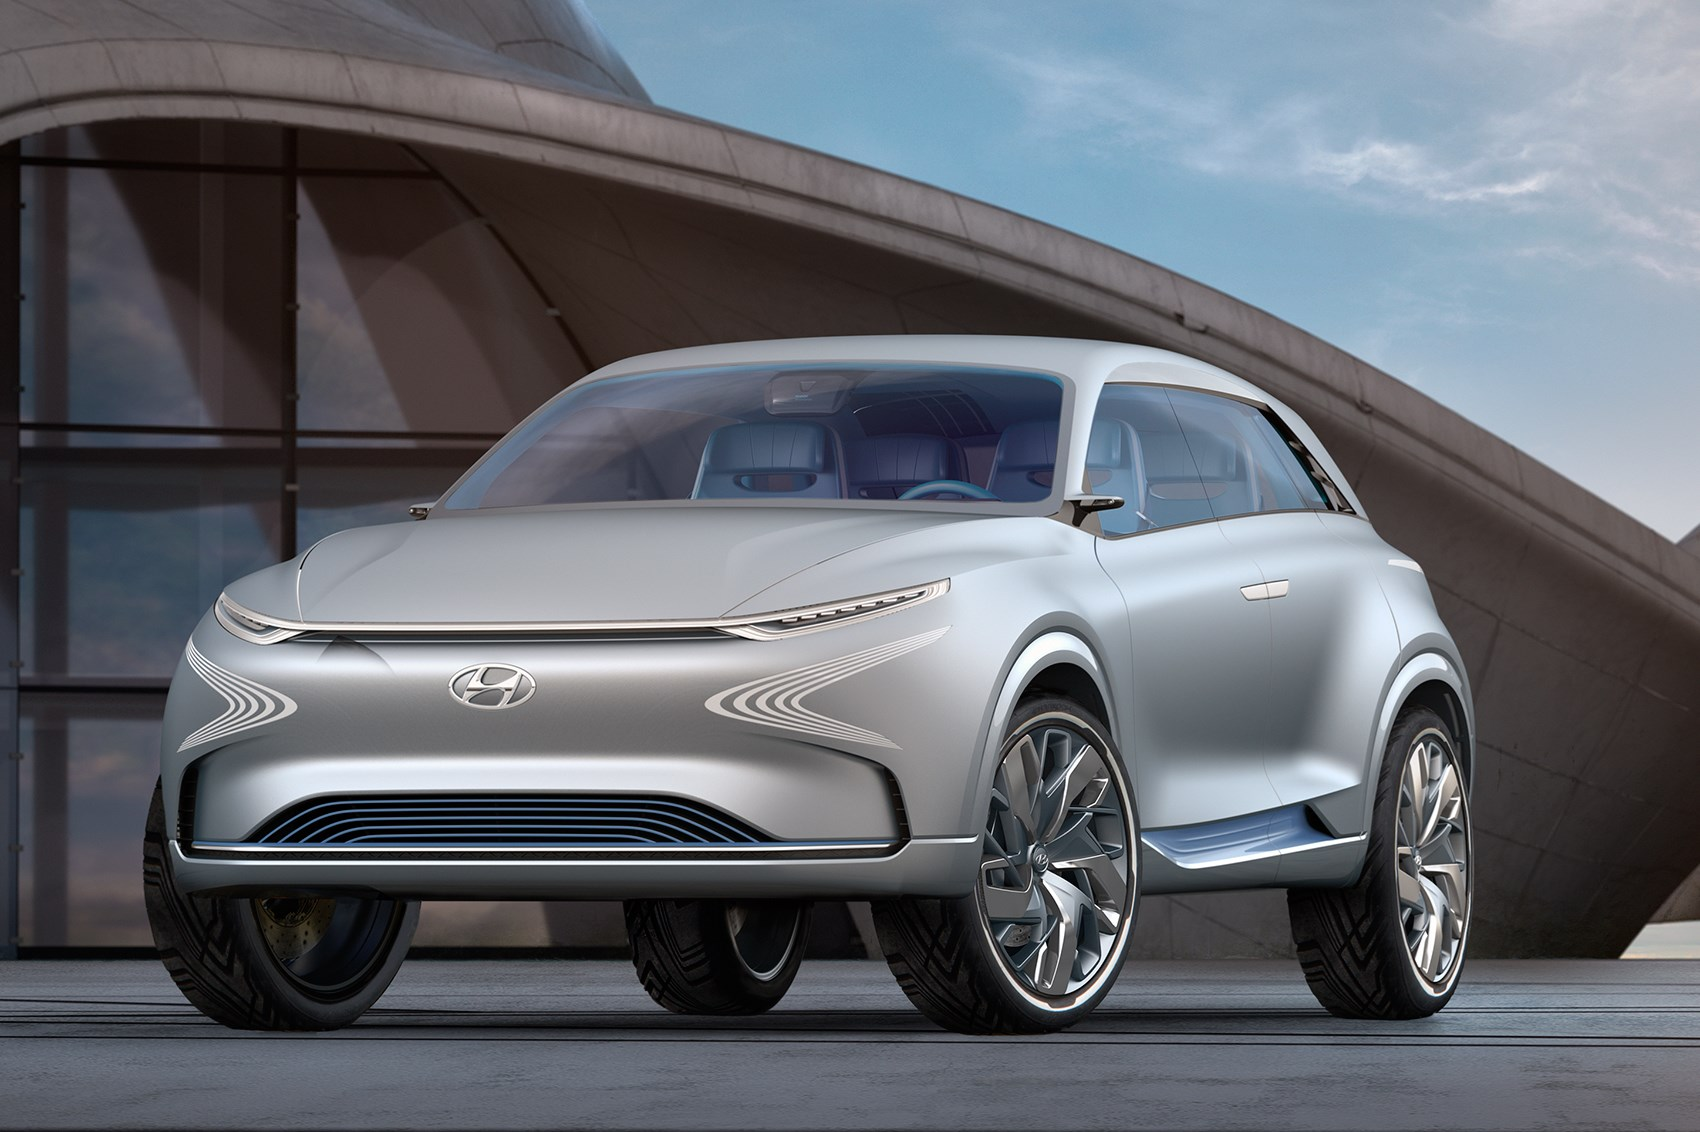 Hyundai reveals FE Fuel Cell Concept with 500-mile range